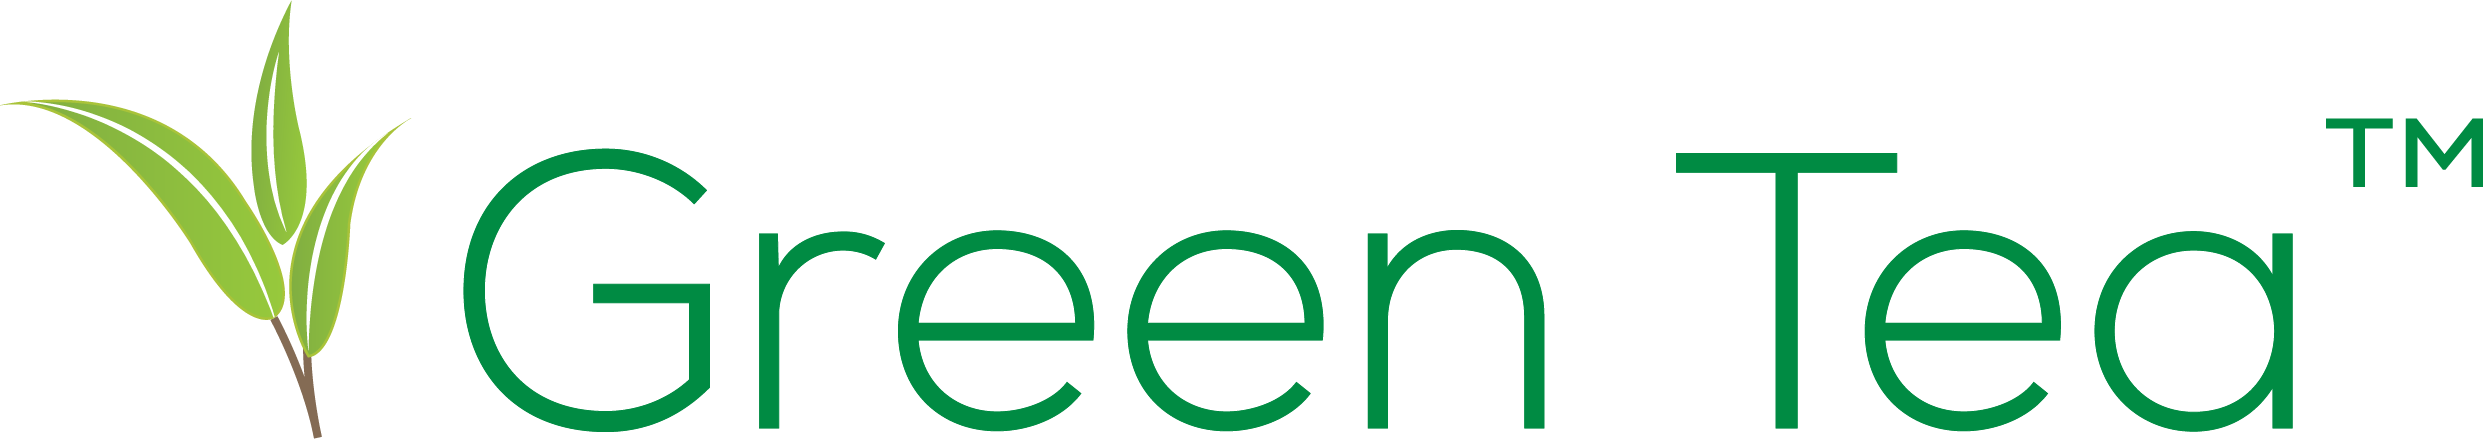 Green Tea Logo.png